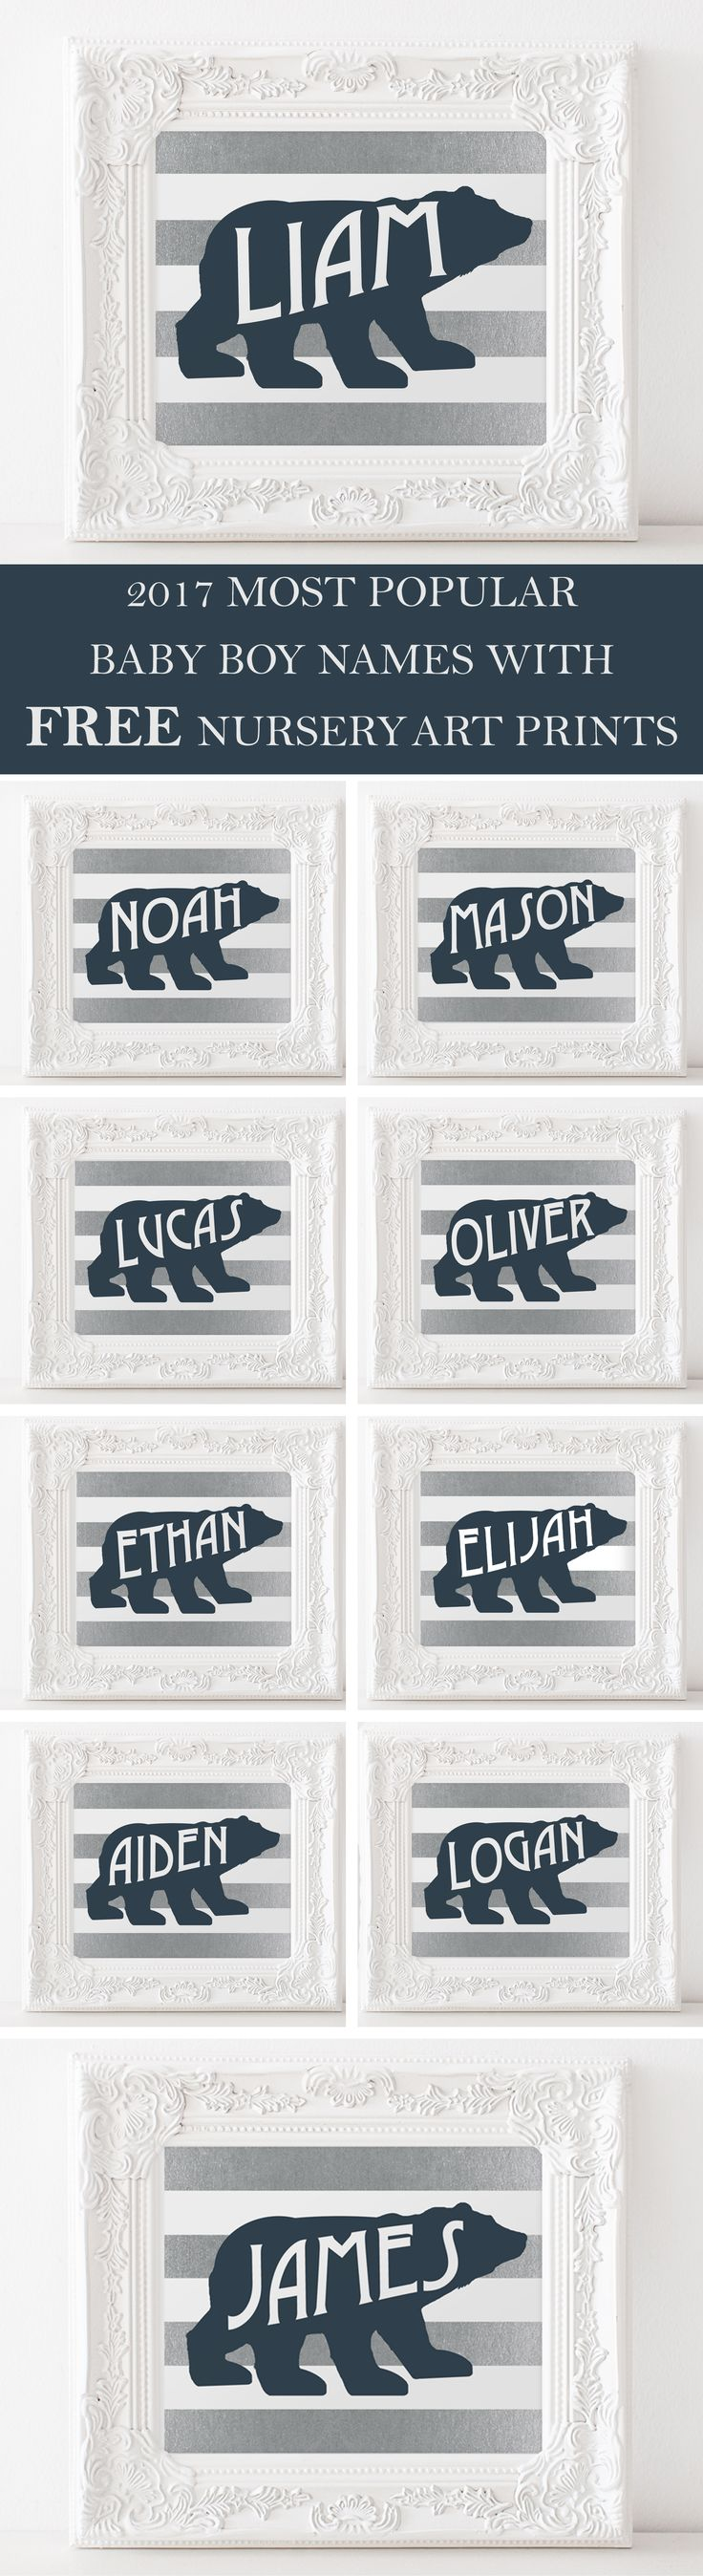 Top ten baby boy names for 2017 are in. Download your free name nursery art featuring one of the names today. Prints are woodland themed.